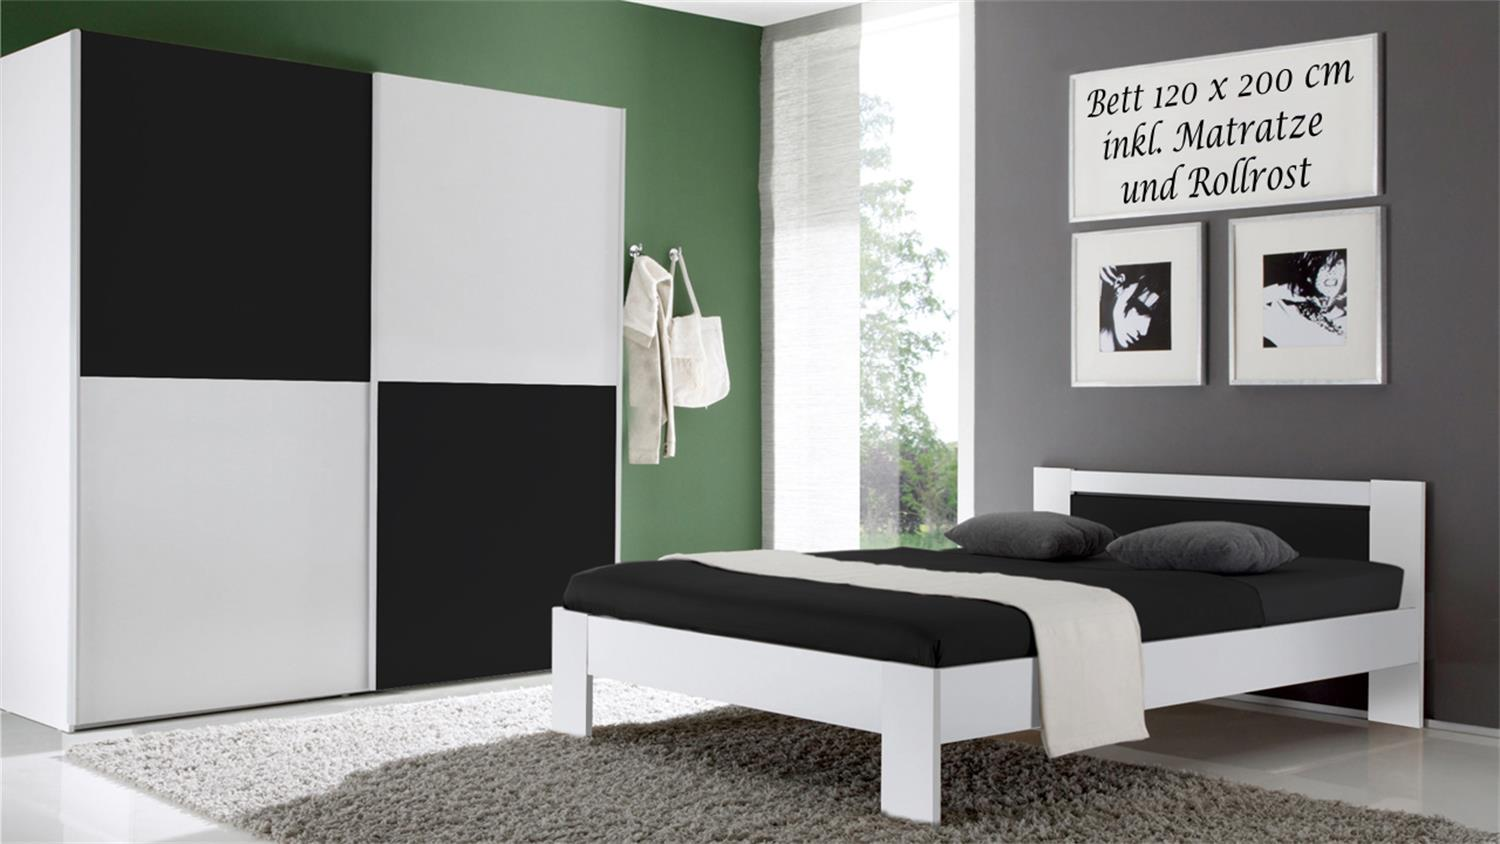 bett vega wei schwarz inkl rollrost und matratze 120x200. Black Bedroom Furniture Sets. Home Design Ideas